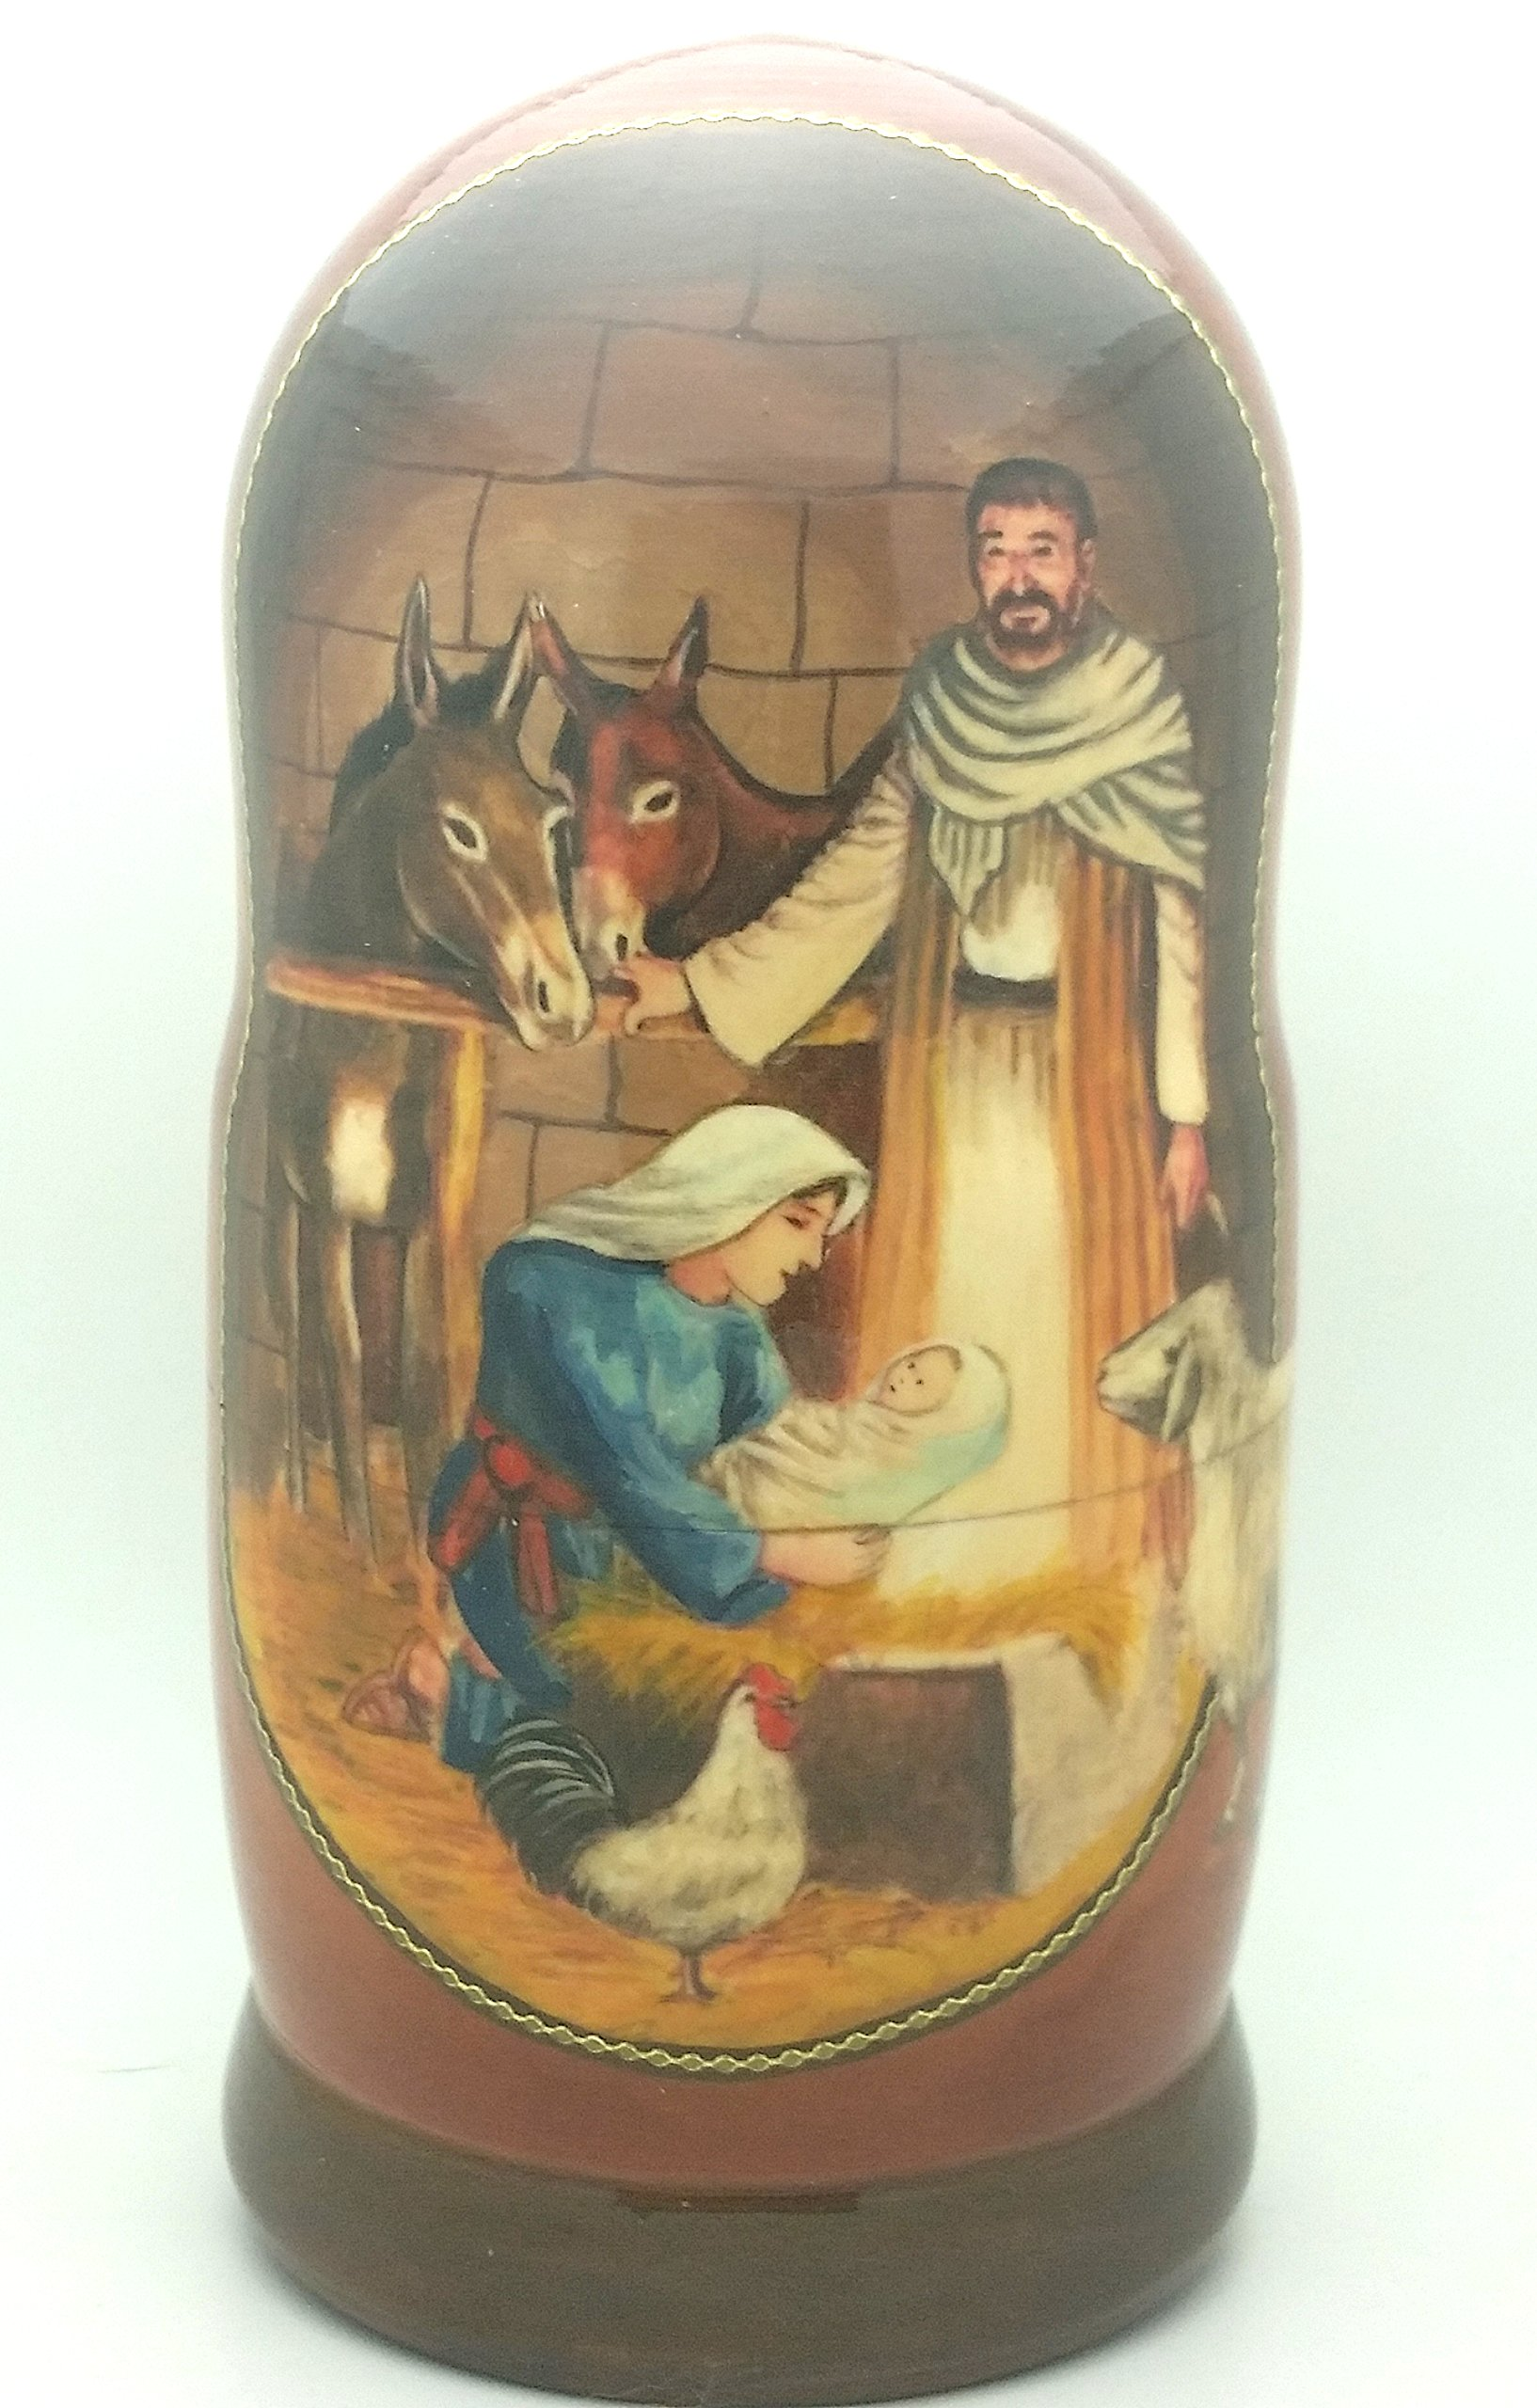 Nativity Jesus Life Nesting Doll Hand Made in Russia 5 Piece 7''H Christmas Set by BuyRussianGifts (Image #3)